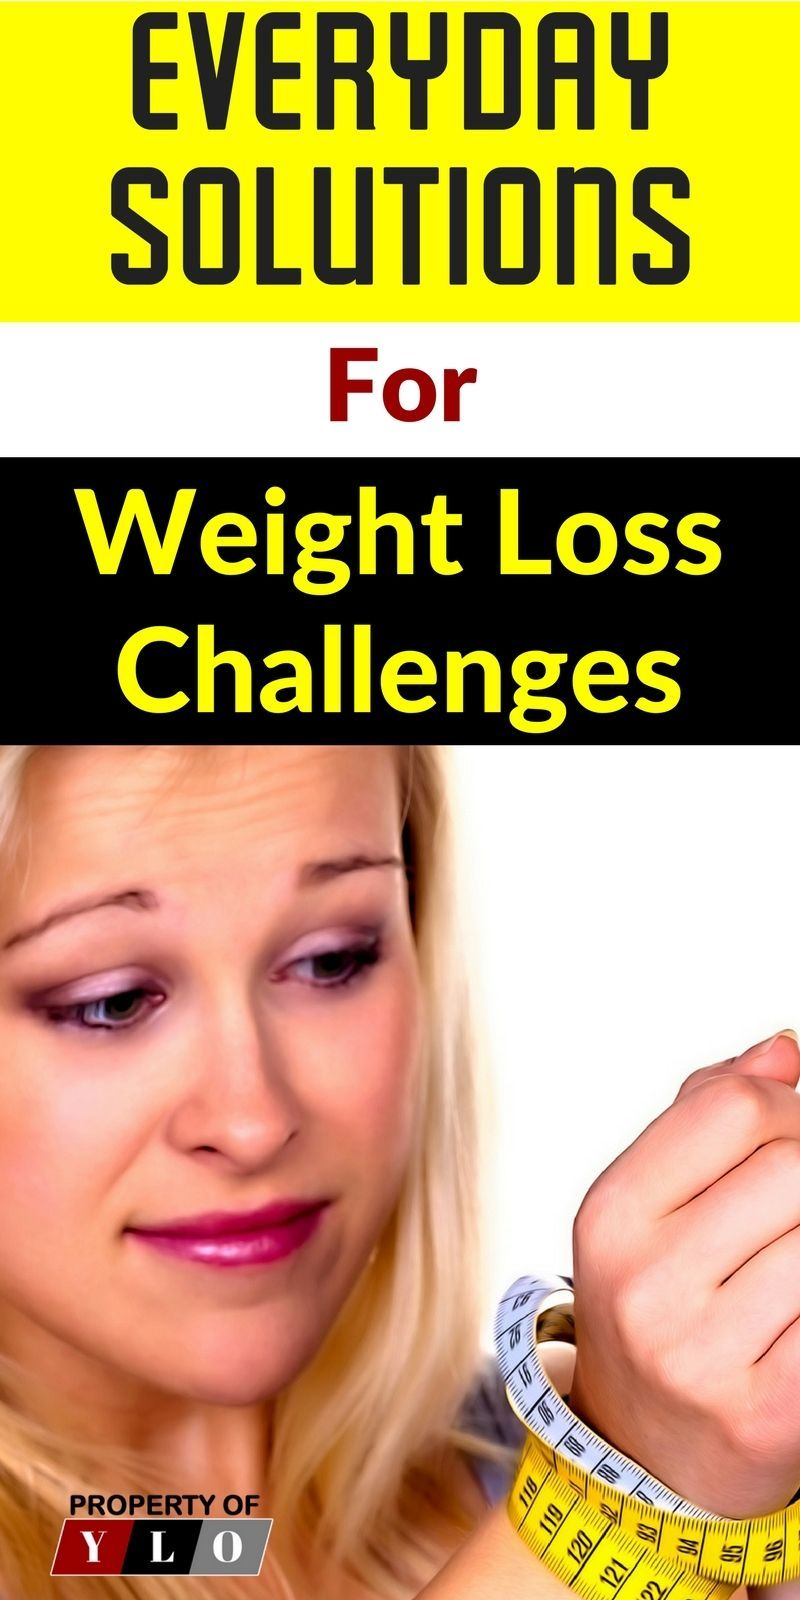 Does super dieters tea make you lose weight